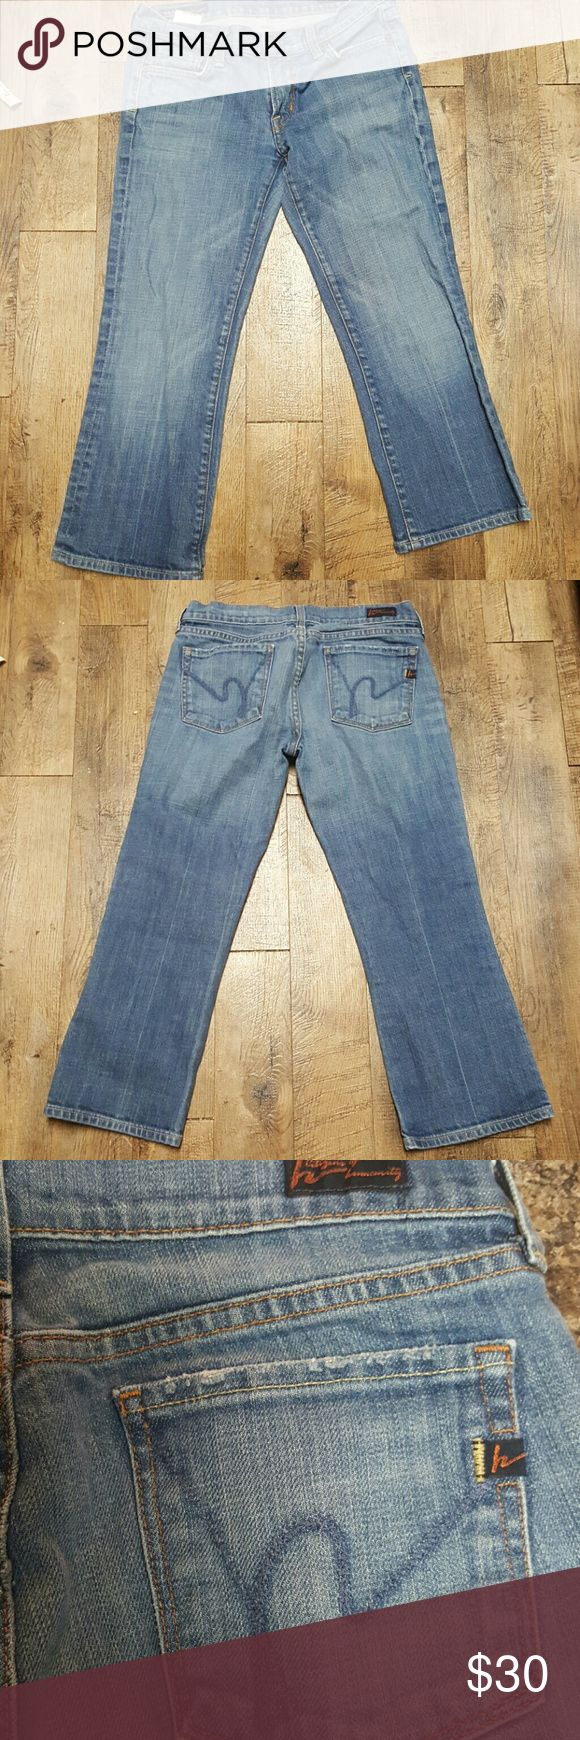 """Citizens of Humanity♨️SALE♨️low waist cropKelly 28 Low rise cropped Kelly stretch cotton jeans in great condition. Sz 28 7 1/2"""" rise 22 5/8"""" inseam Super buy... Citizens of Humanity Jeans Ankle & Cropped"""